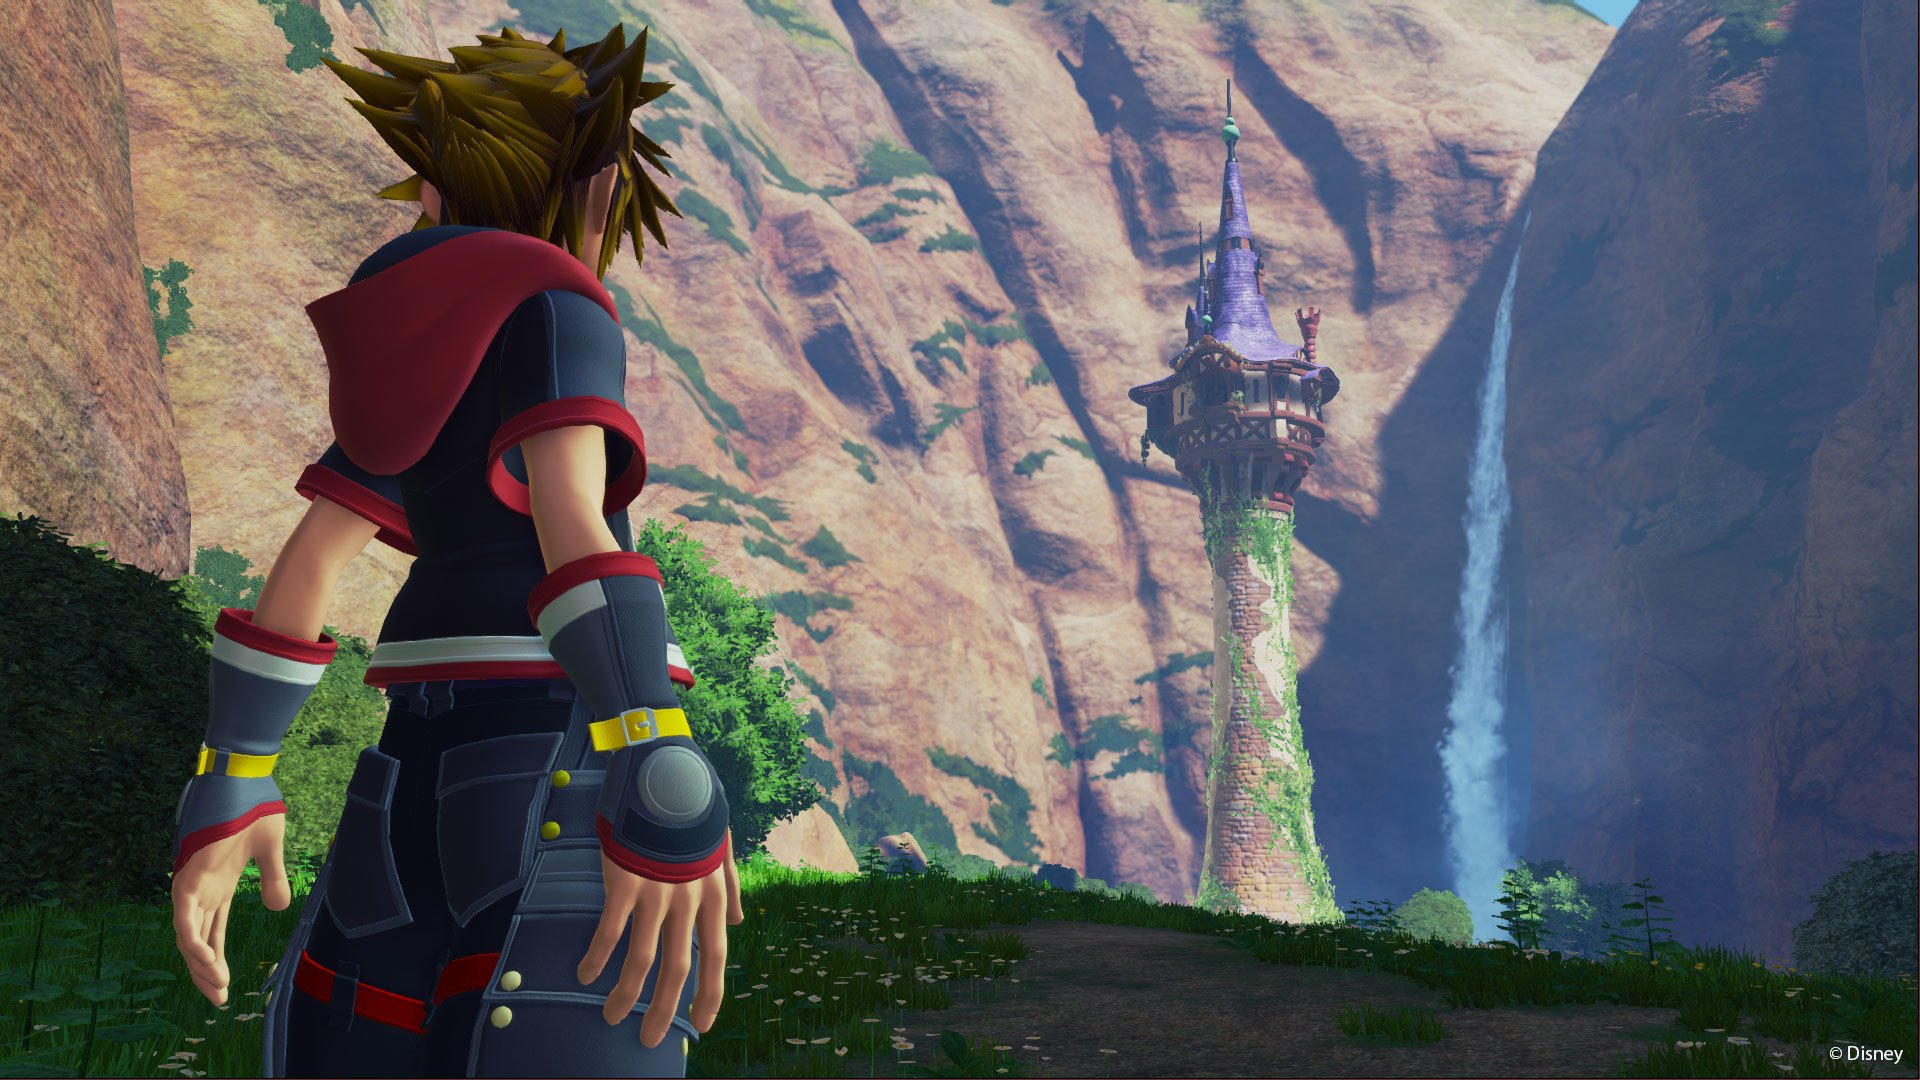 Kingdom Hearts Iphone Wallpaper Kingdom Hearts Iii Full Hd Wallpaper And Background Image